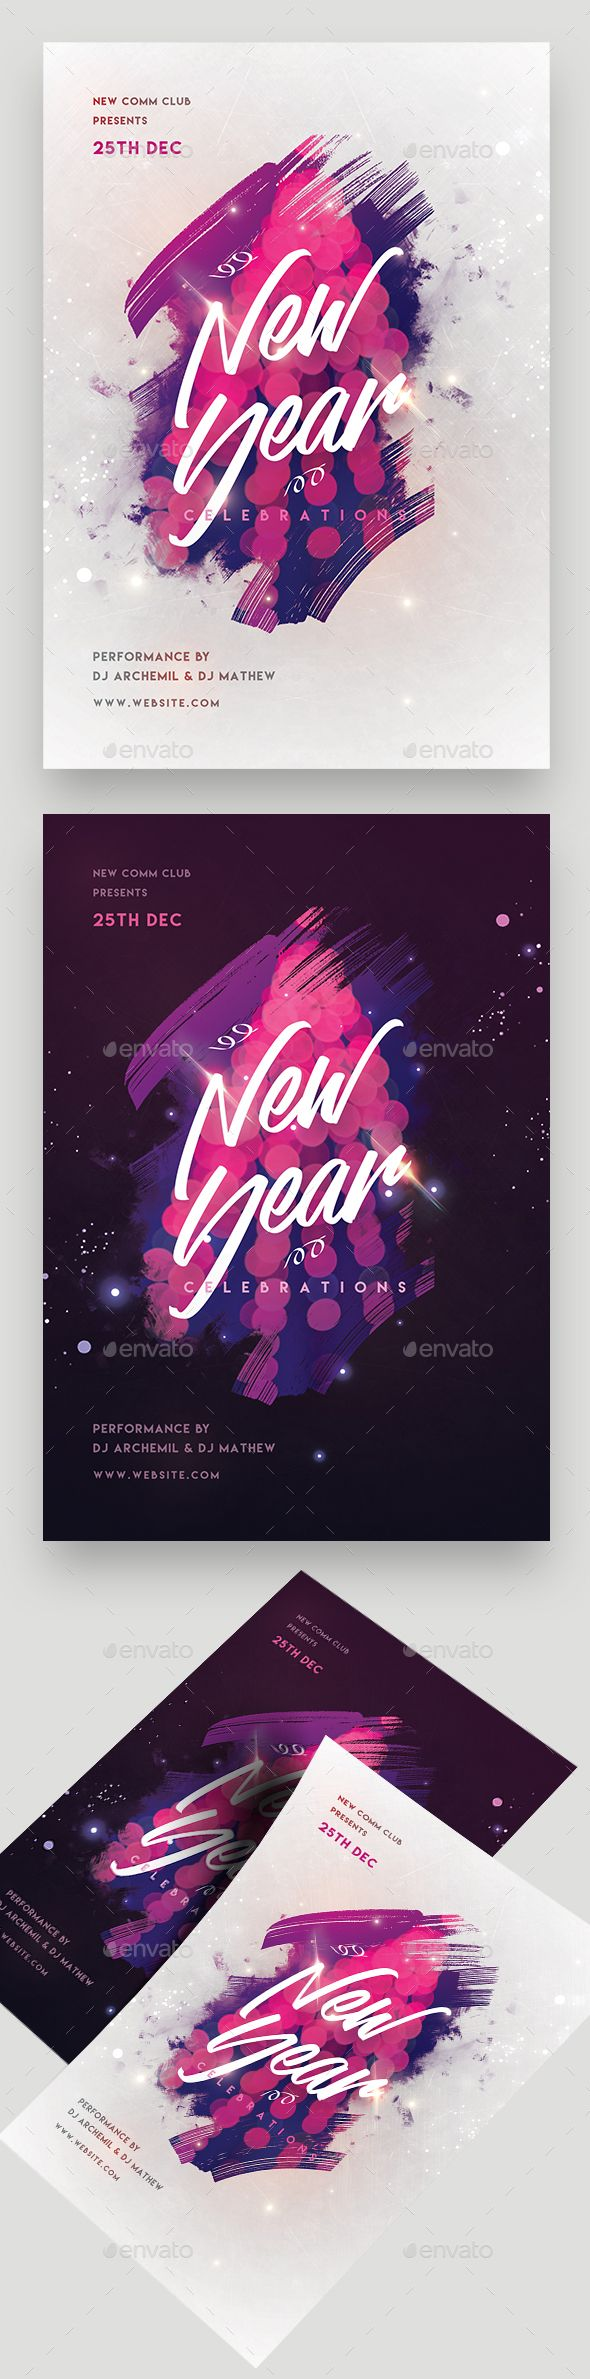 #New Year Party #Flyer - Clubs & Parties #Events